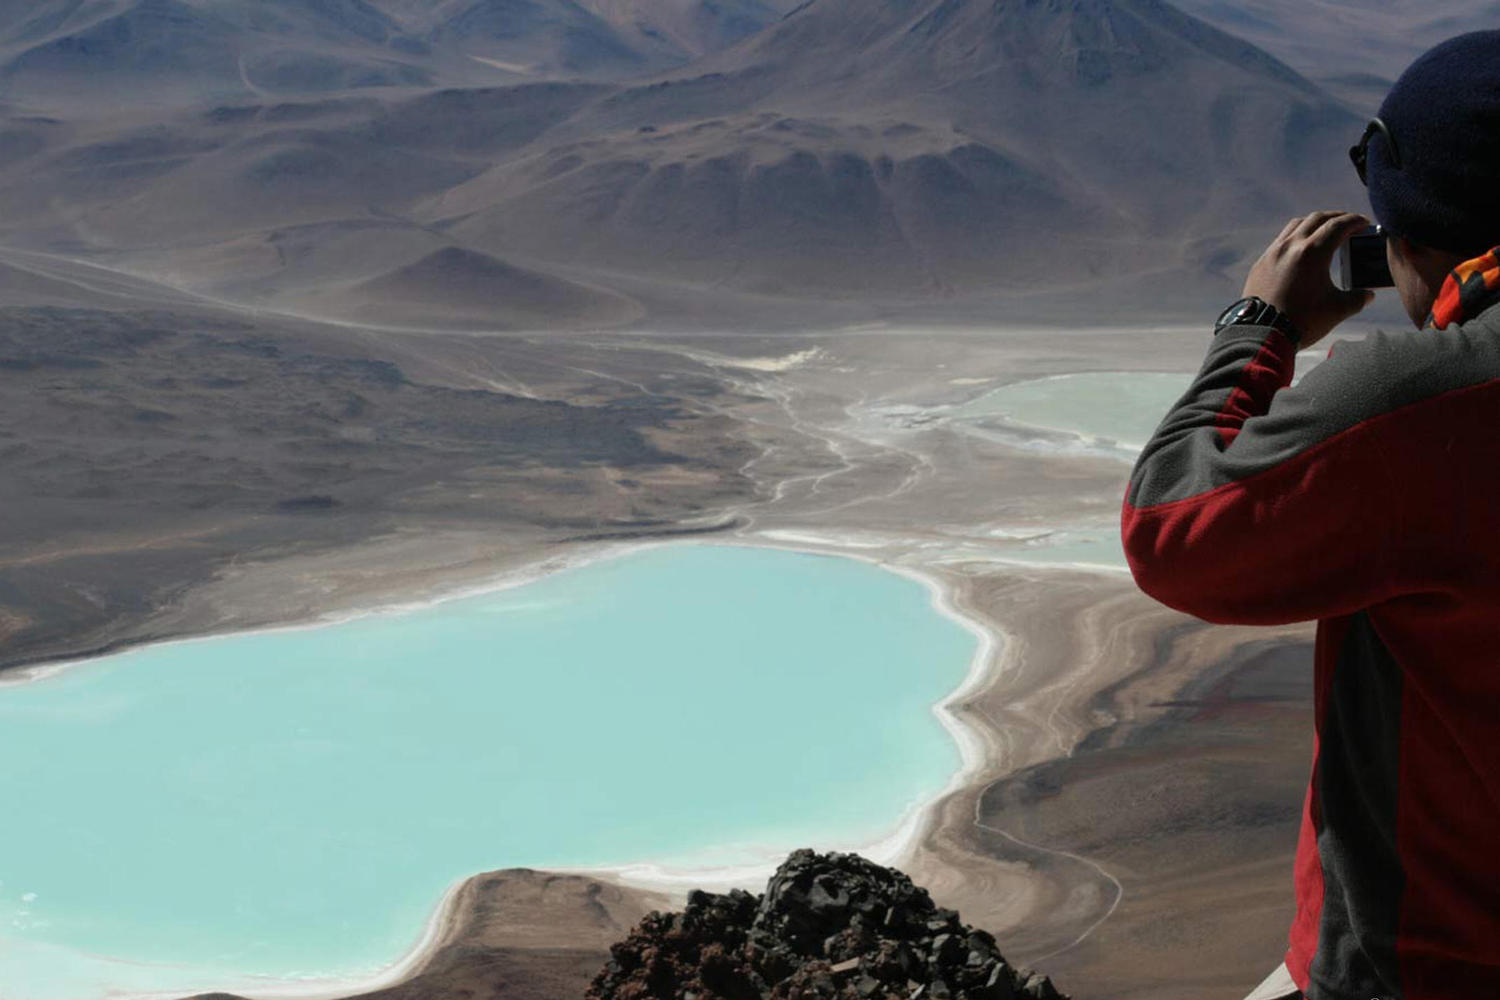 Looking out from the peak of Toco Volcano in the Atacama